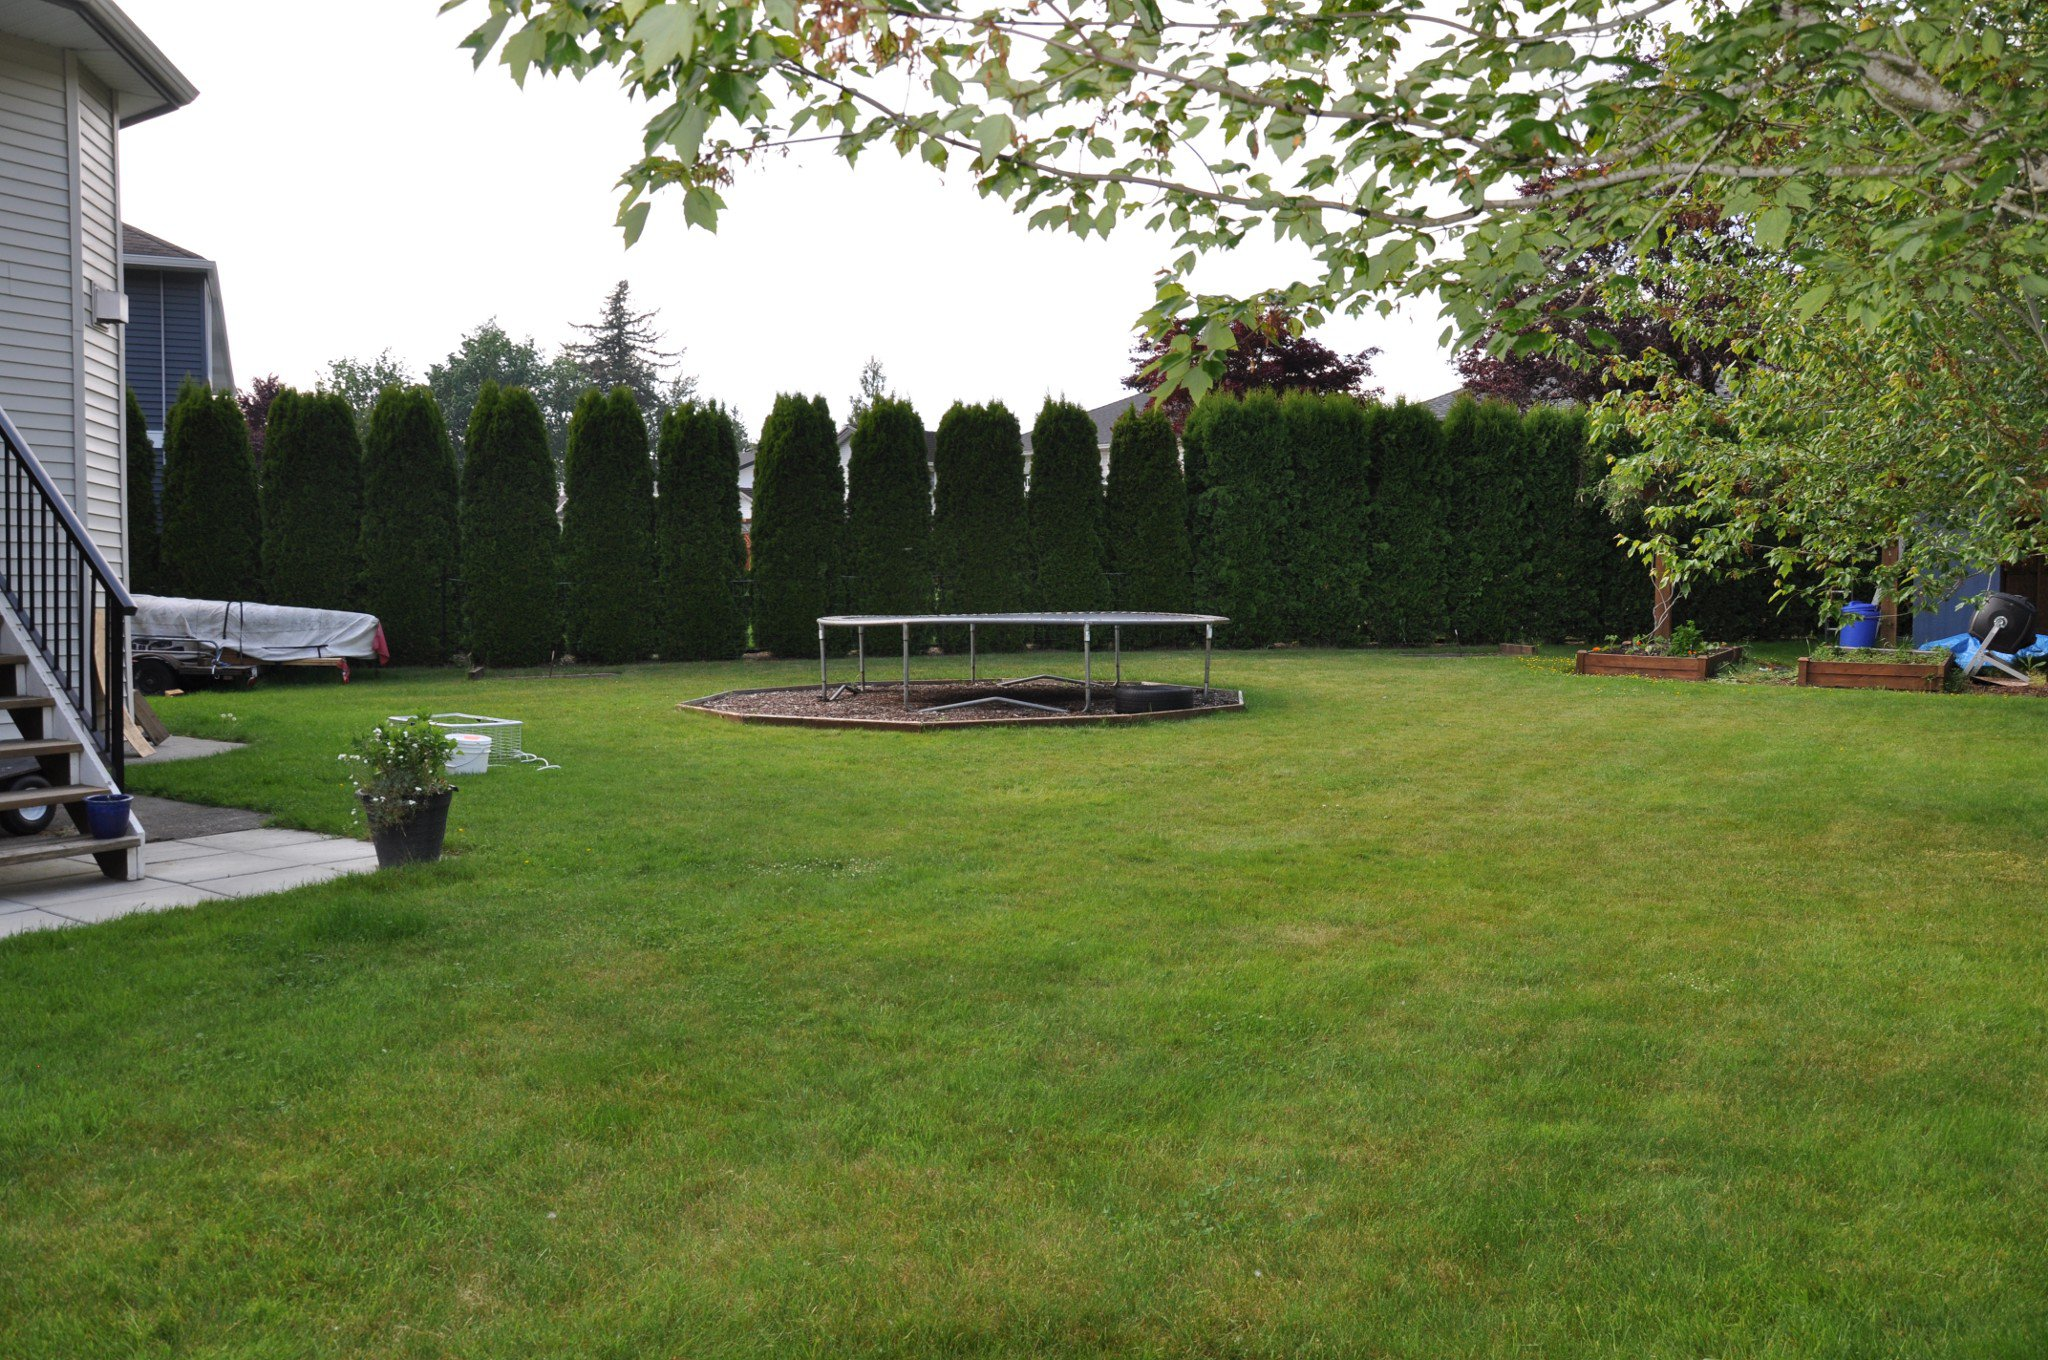 Photo 27: Photos: 4076 Channel St. in Abbotsford: Abbotsford East House for rent